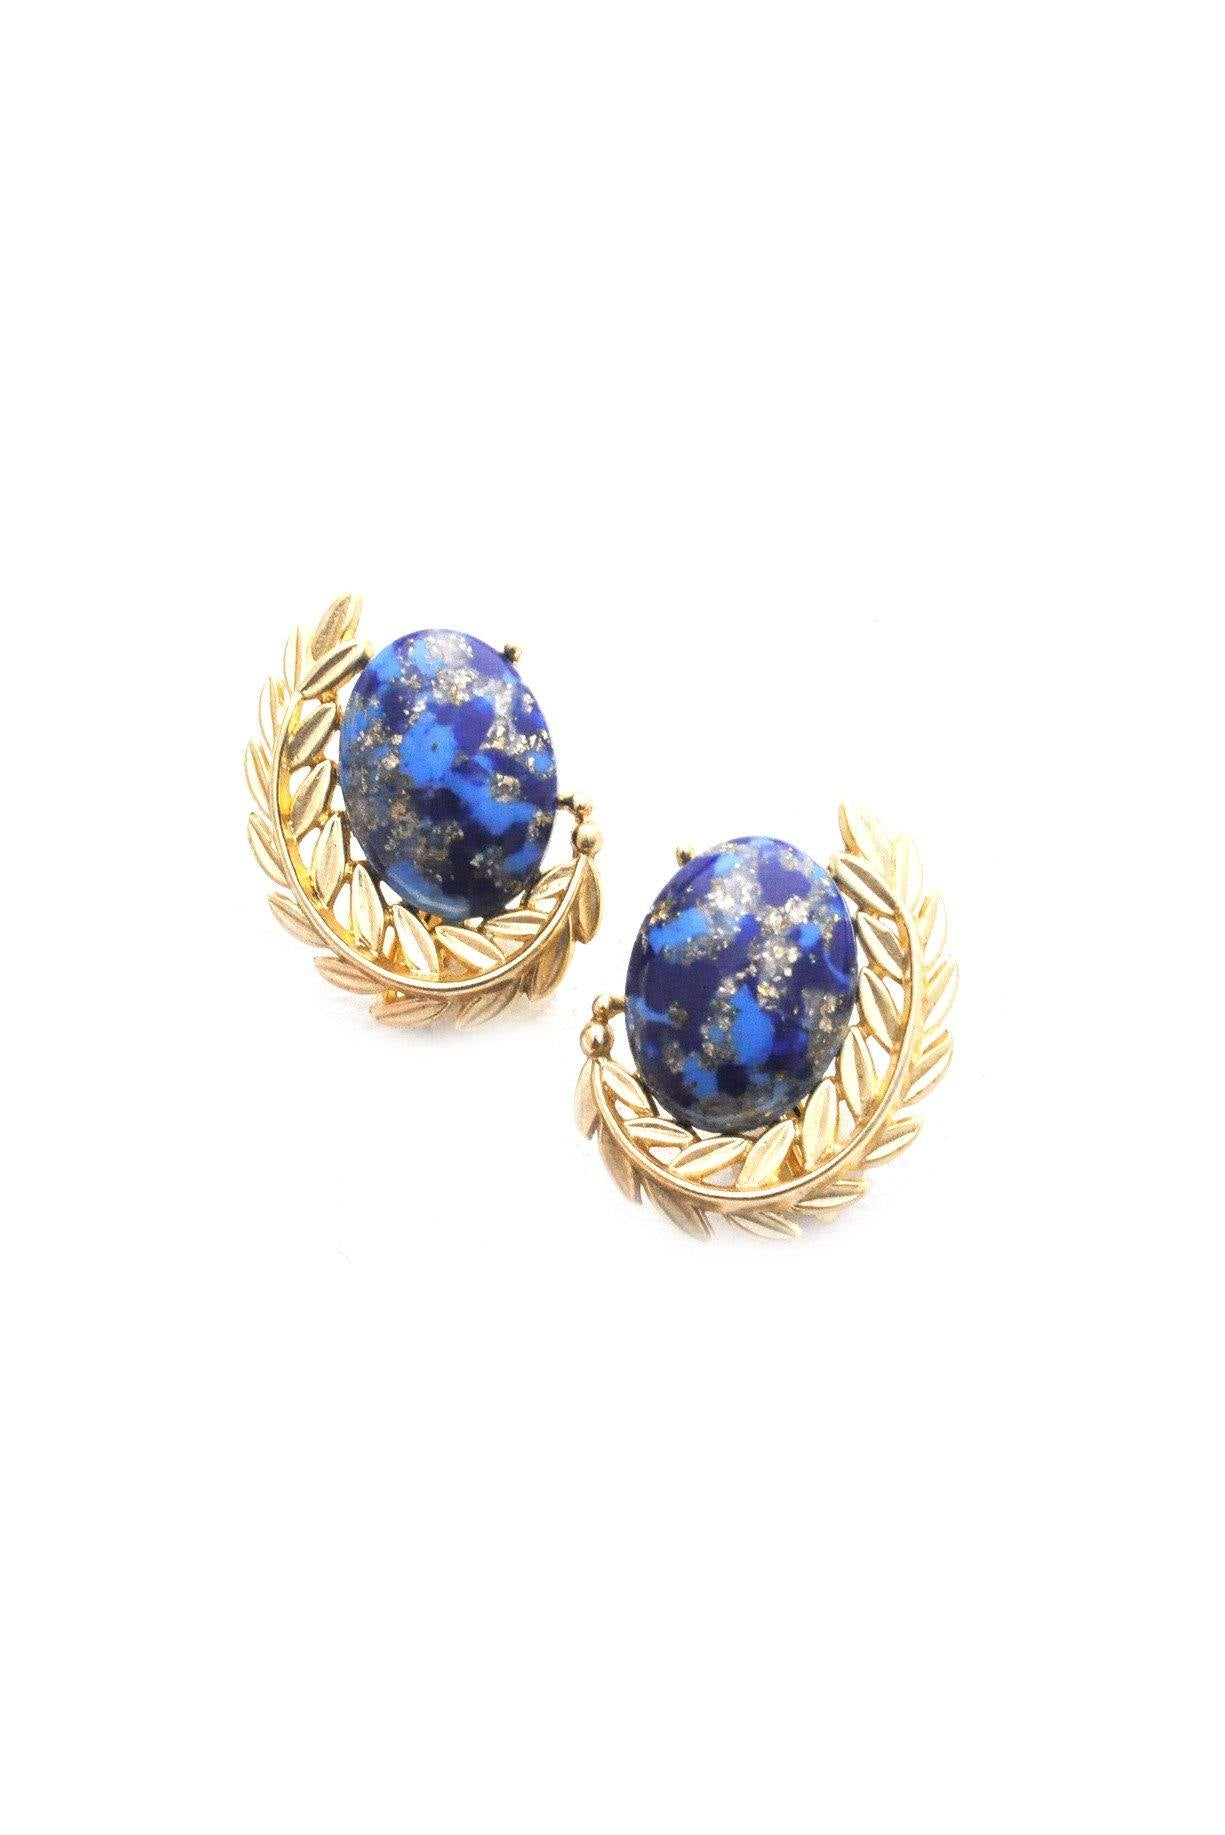 Blue Cabochon and Leaf Clip-on Earrings - Sweet & Spark